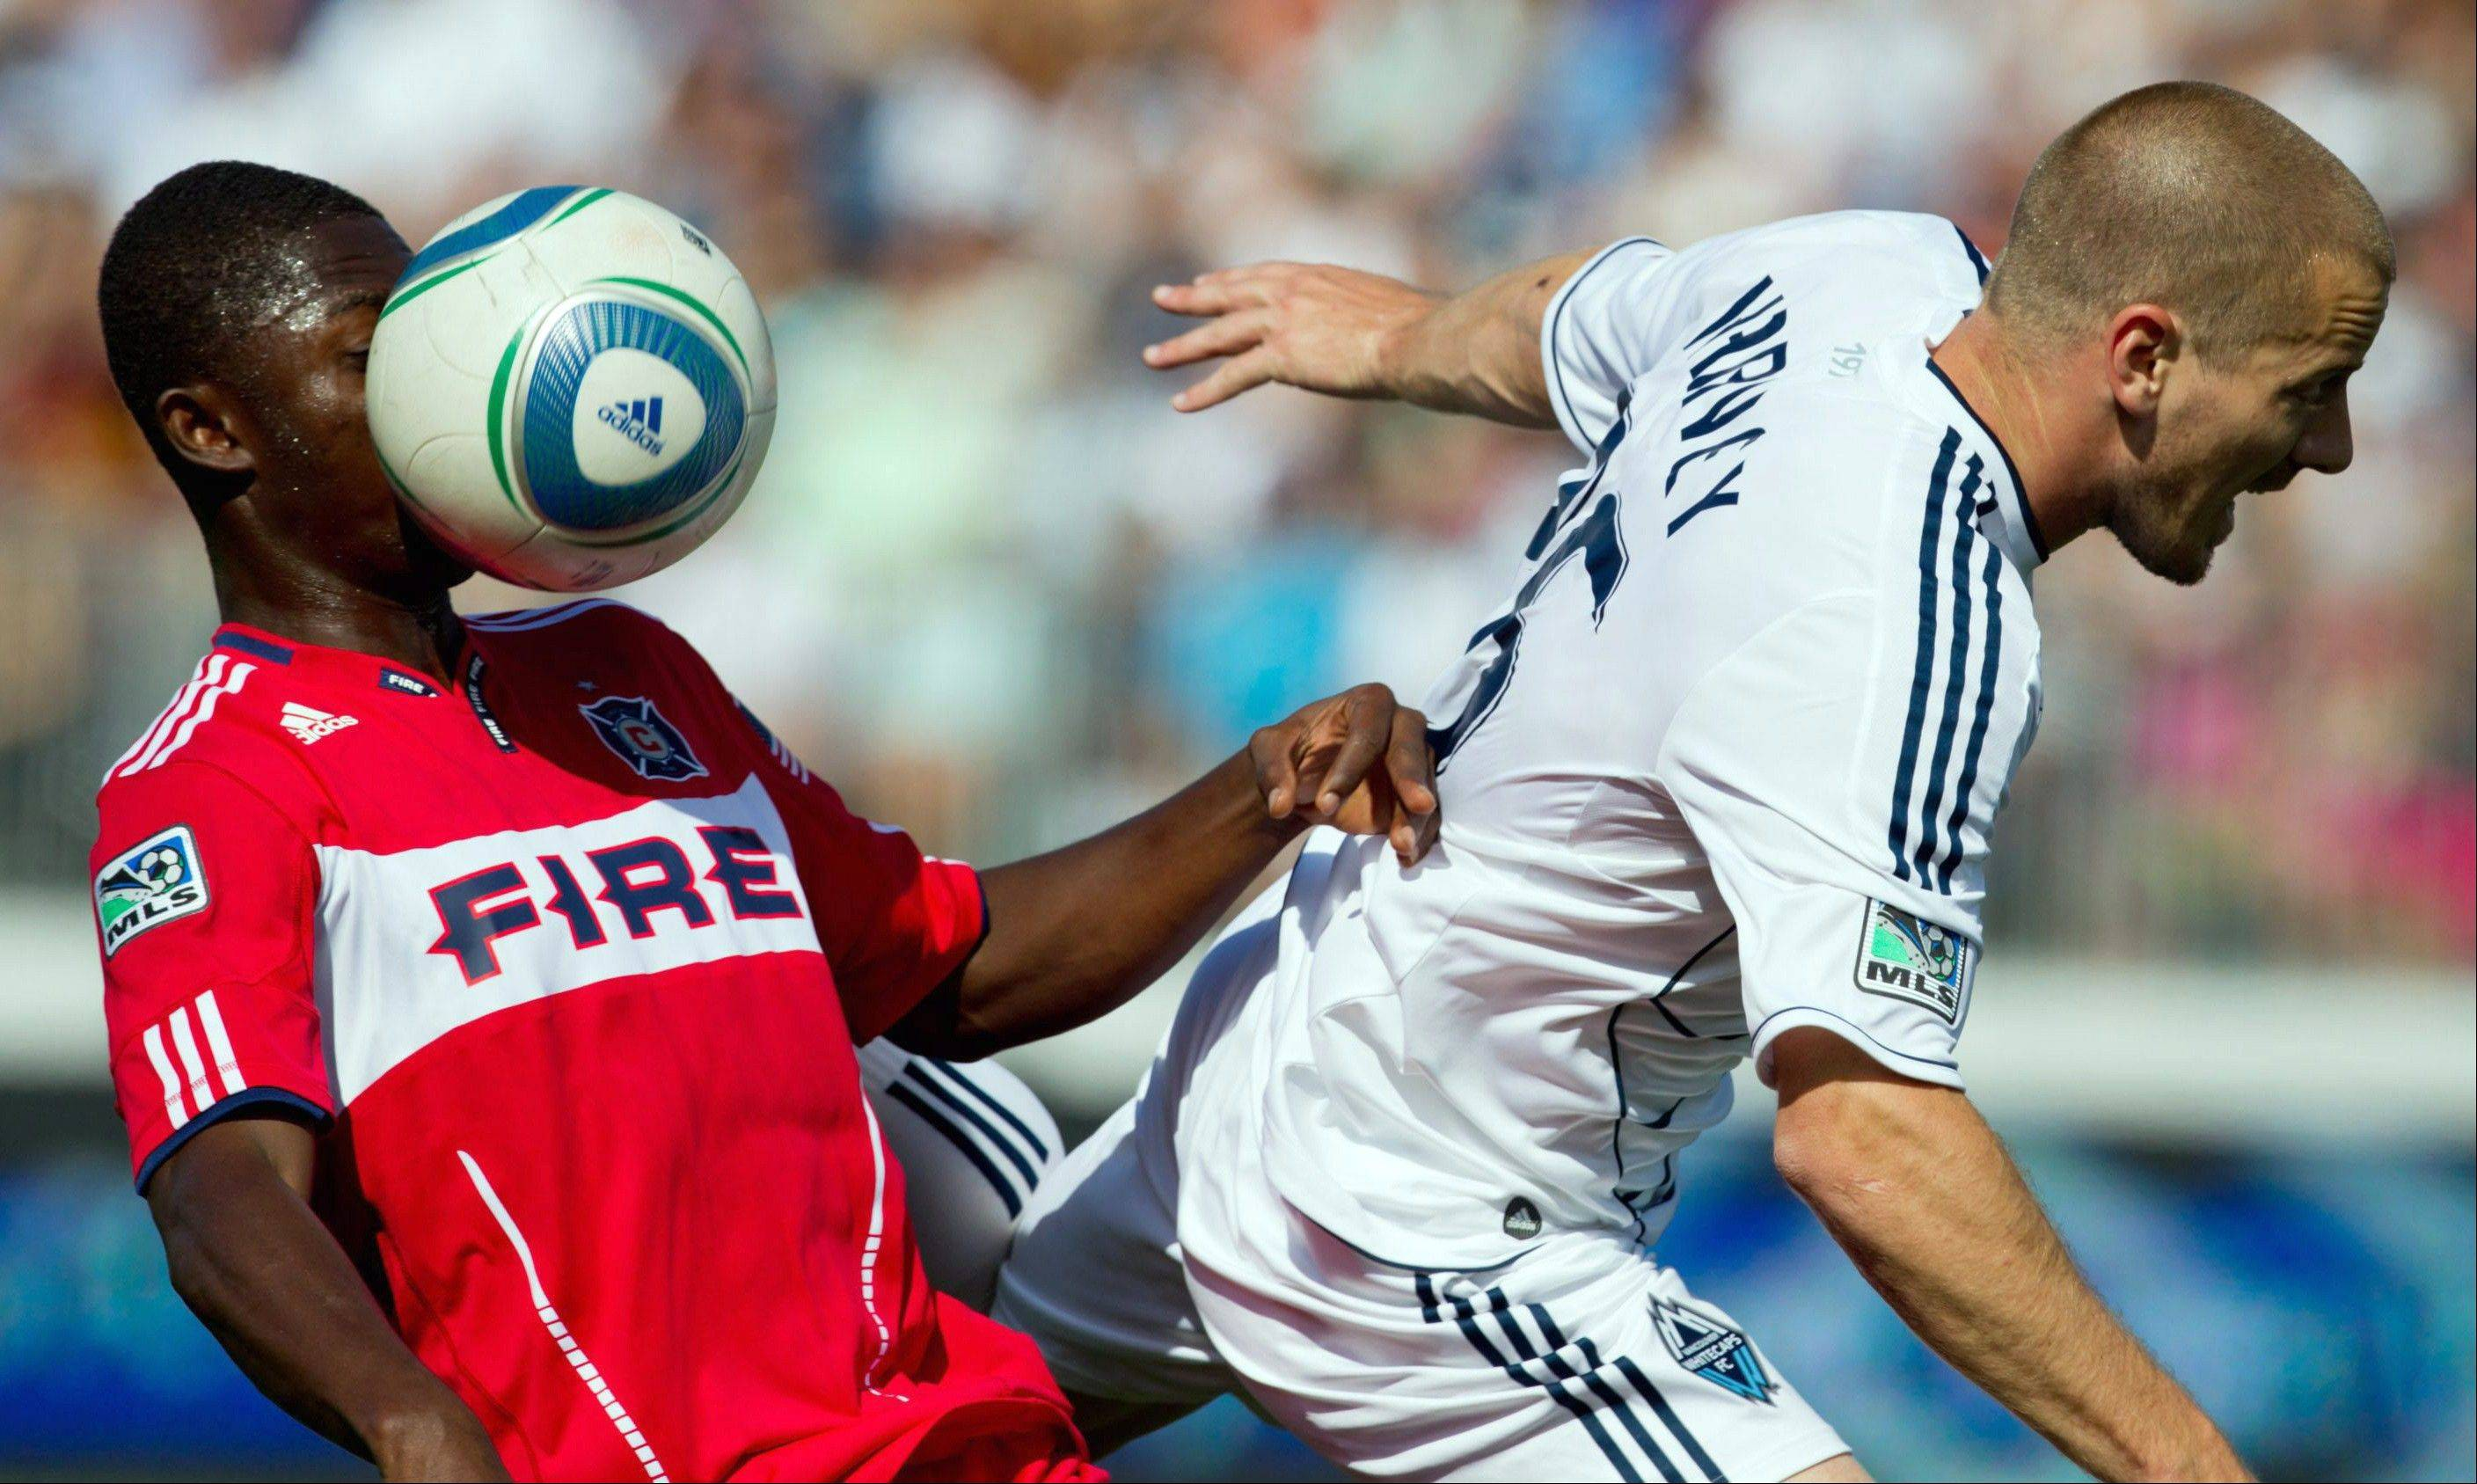 After Sunday's 4-2 loss Sunday at Vancouver, the Chicago Fire has been outscored by expansion teams 9-4 this season, and has managed only two wins in its last 22 games. The Fire's Patrick Nyarko, left, took a ball to the face as he battled Vancouver's Jordan Harvey on Sunday.